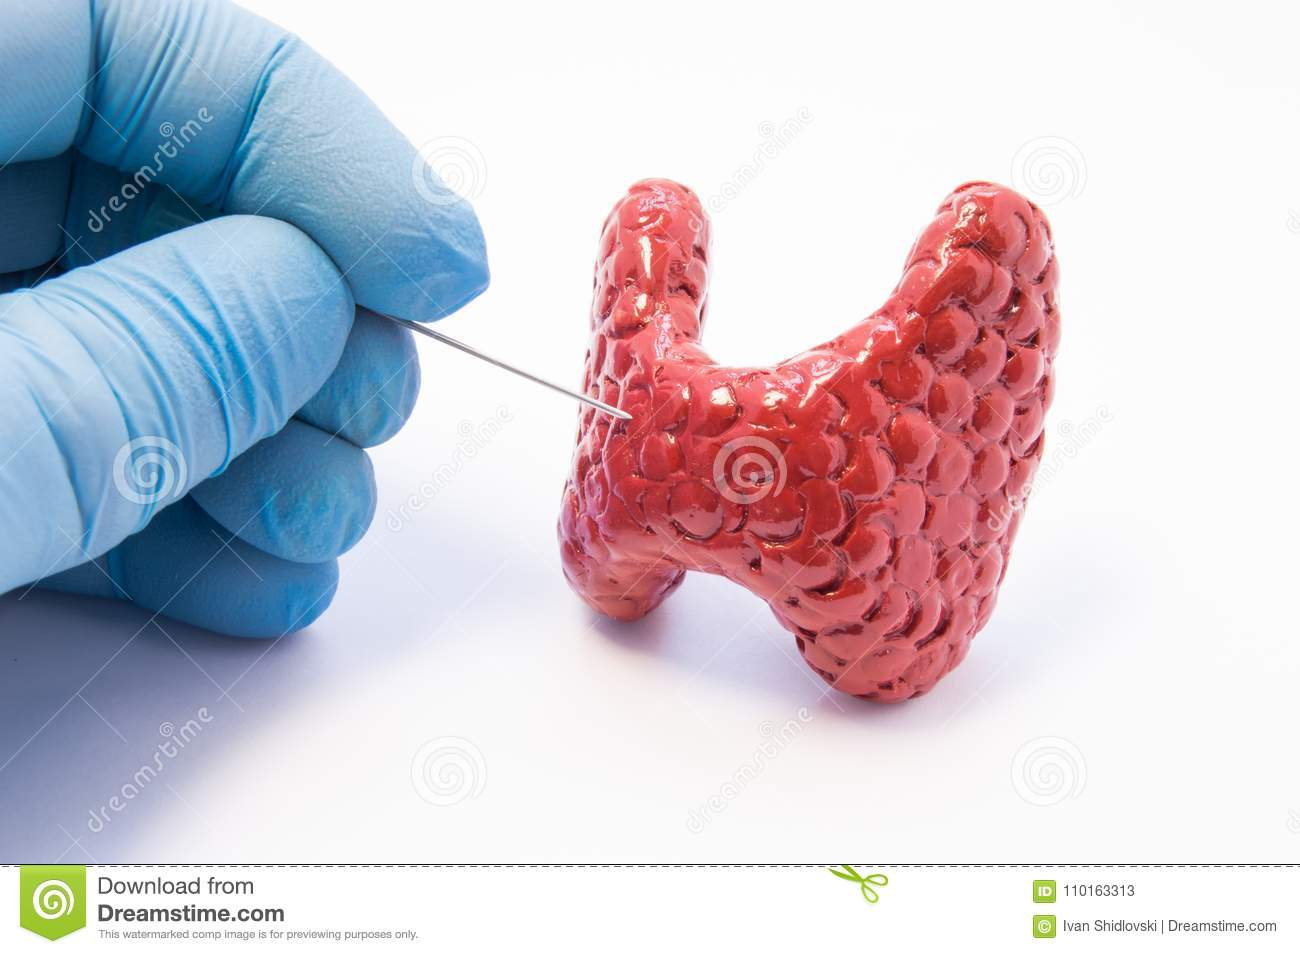 A biopsy of the thyroid: what is it, how is it done Thyroid biopsy: preparation, interpretation of test results, consequences